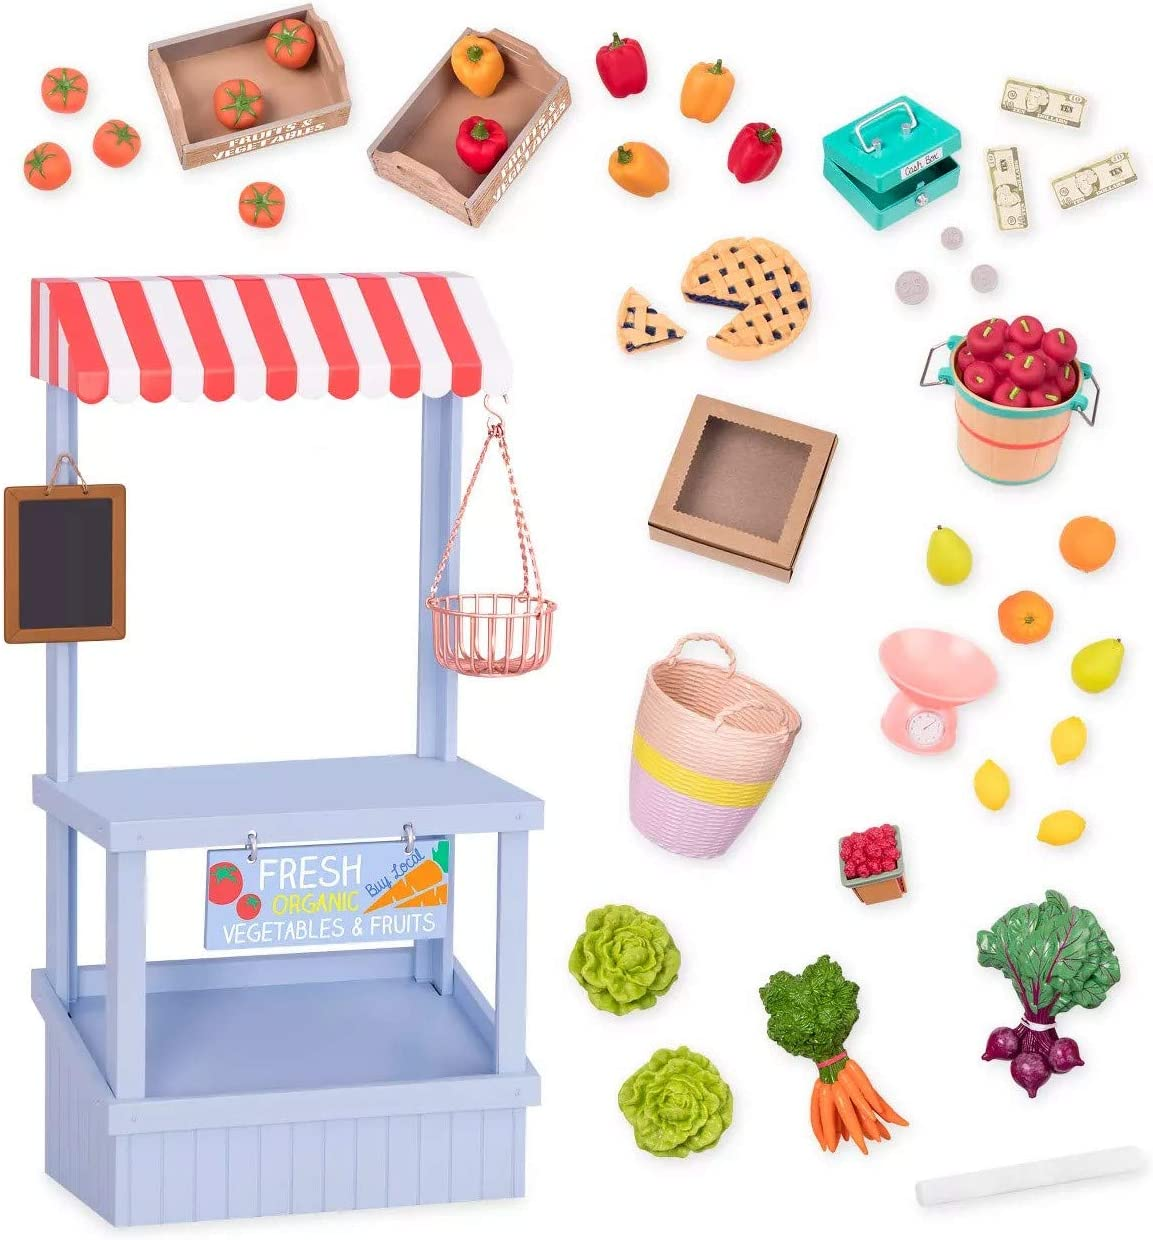 Our Generation- Deluxe Farmer's Market Set Grocery- Accessory Set for 18 inch Dolls- Ages 3 Years and Up